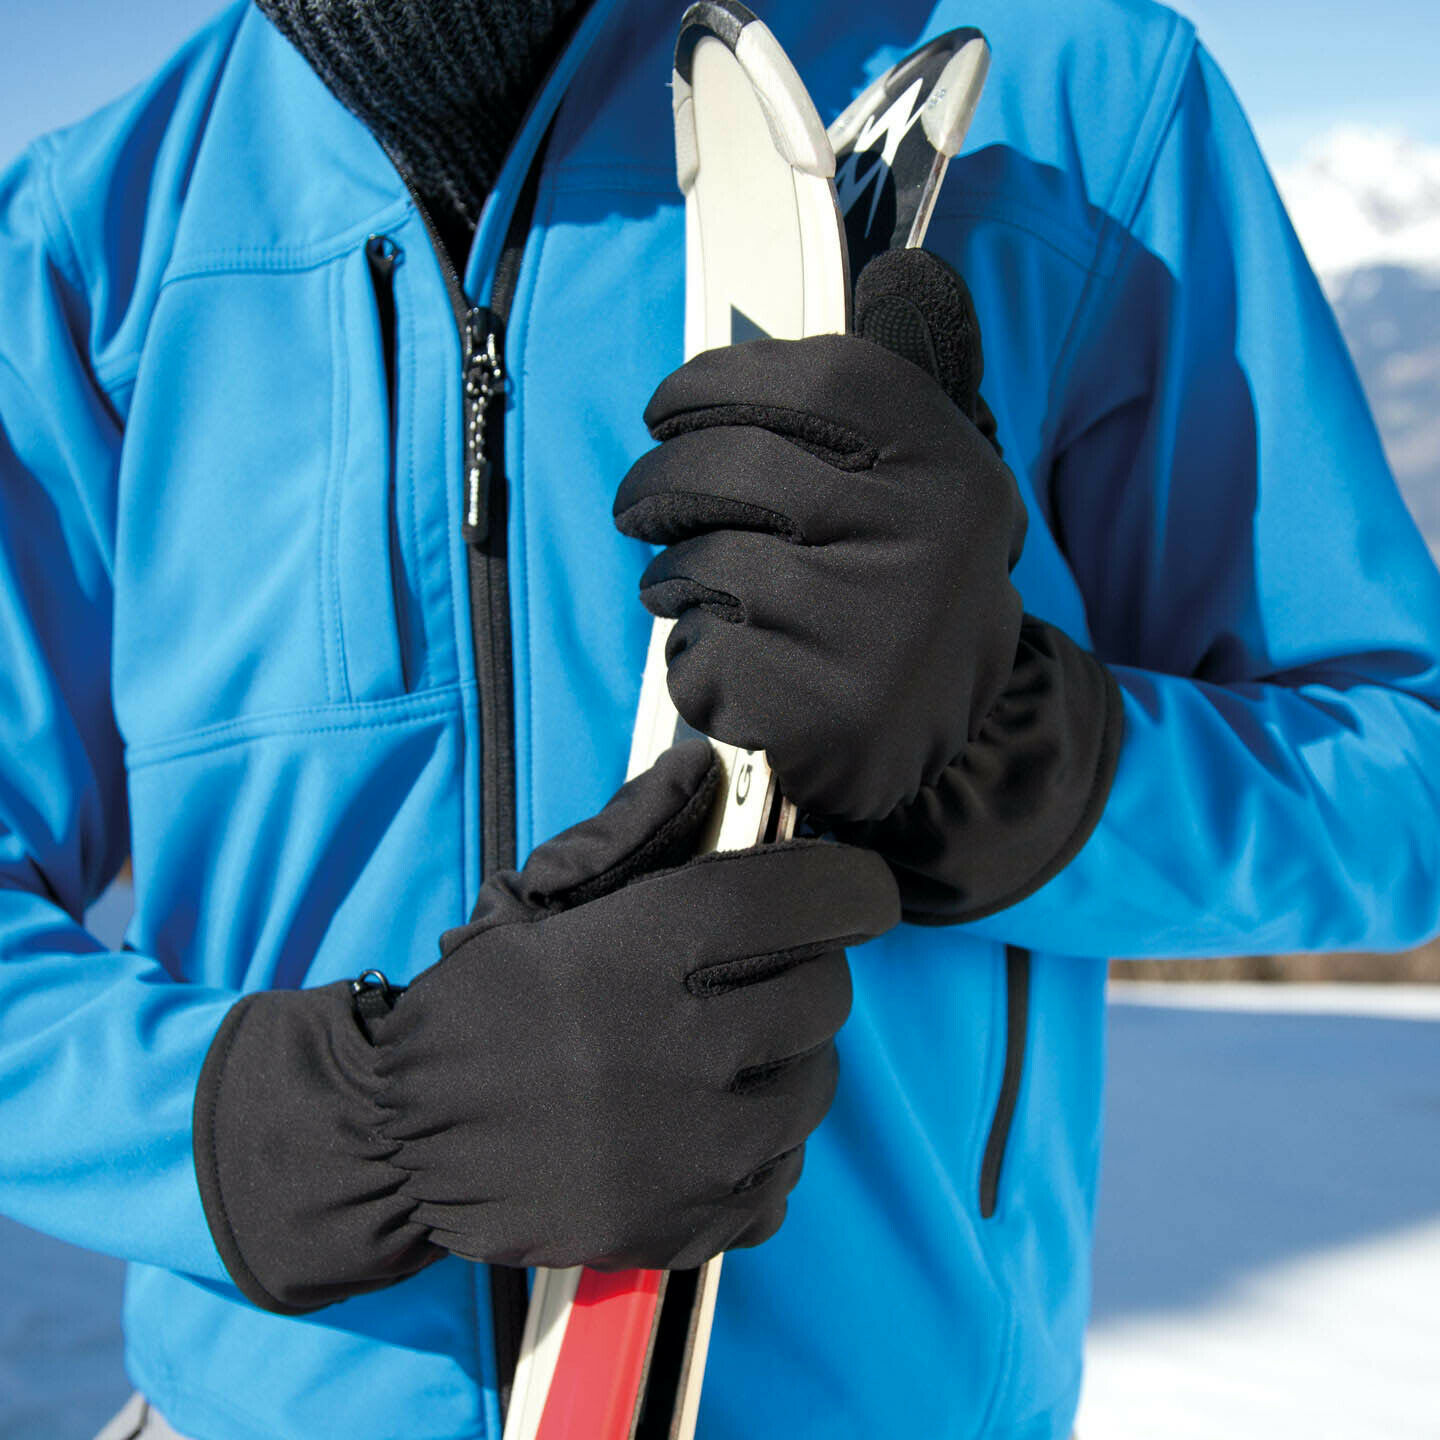 Softshell Thermal Ski Gloves Breathable Windproof Water Repellent Winter Gloves